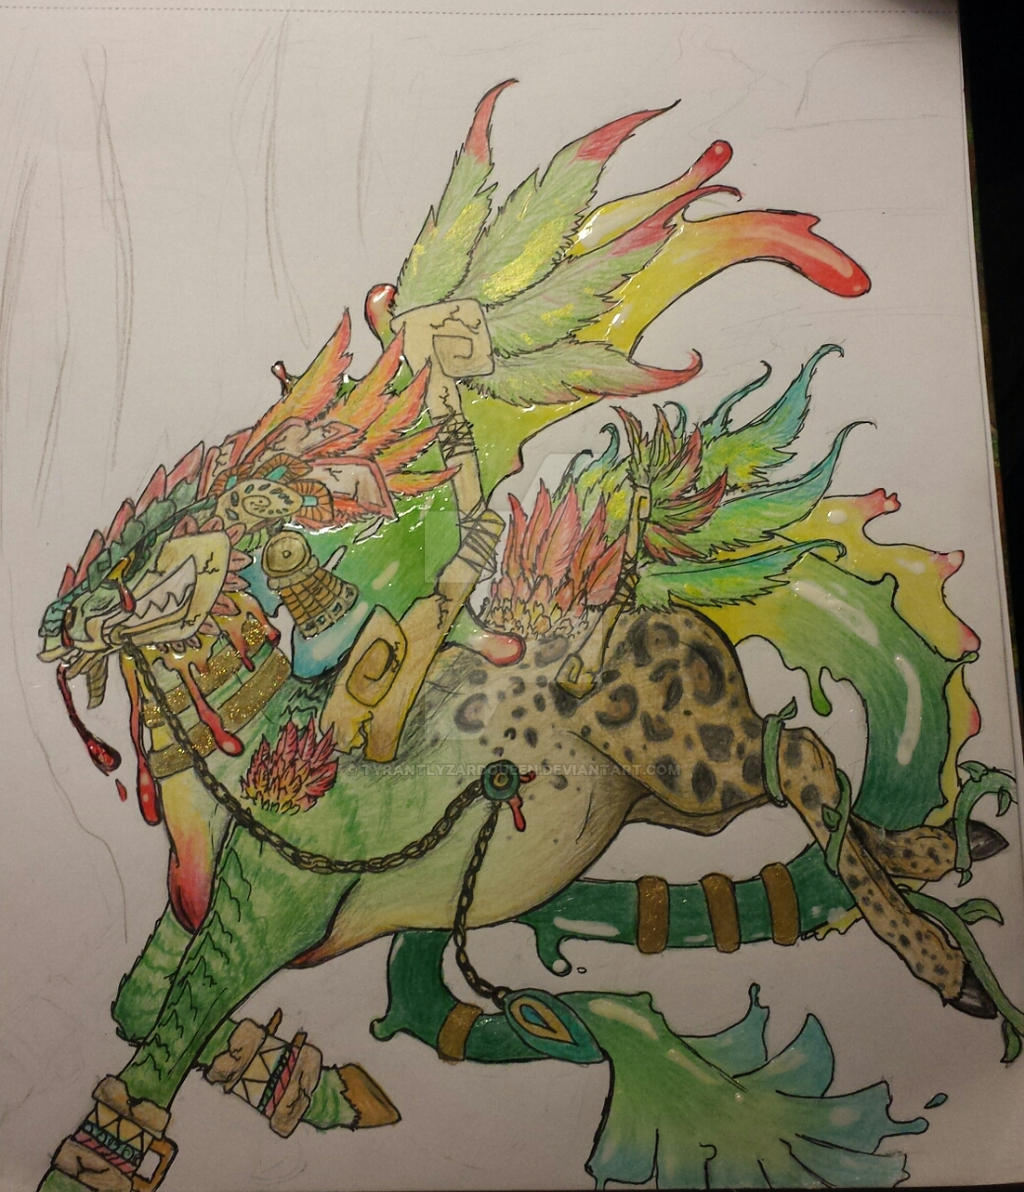 Feathered serpent